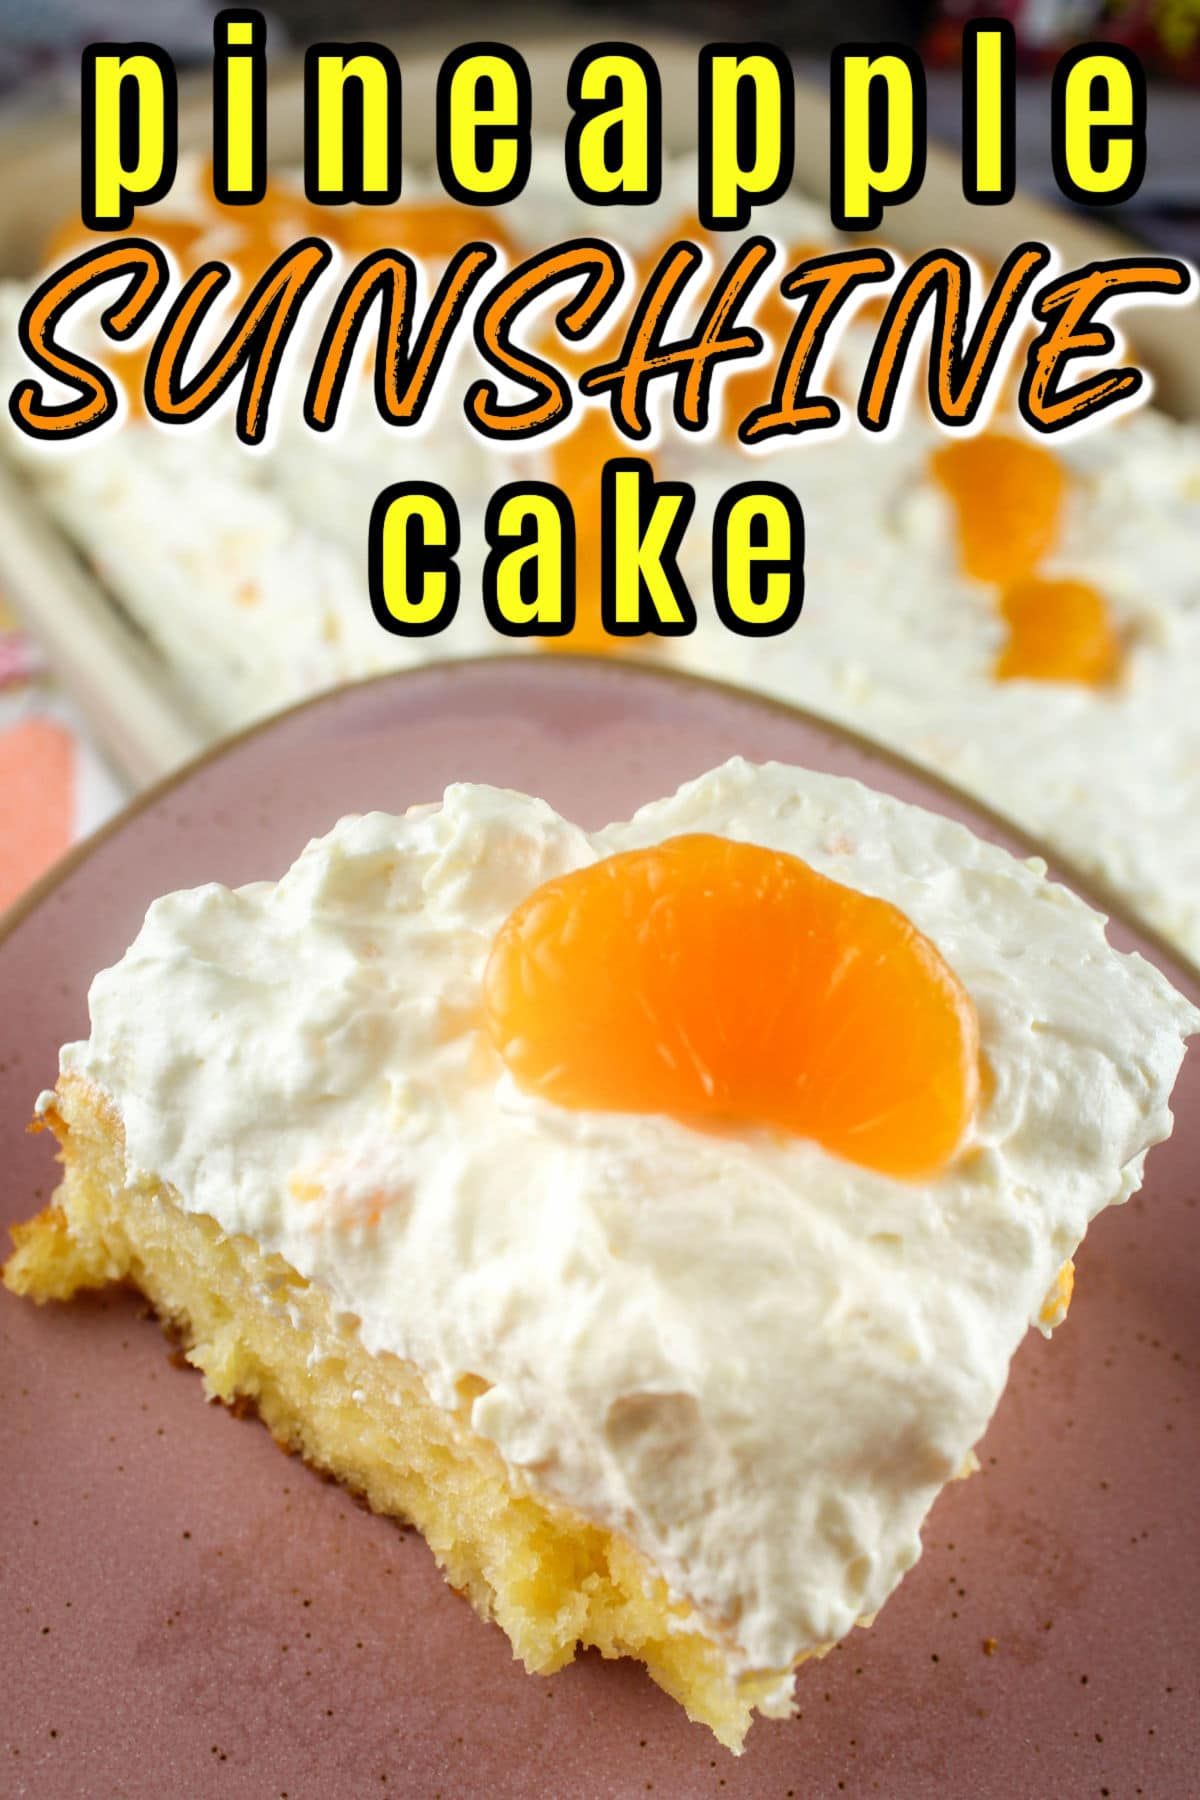 This Pineapple Orange Sunshine Cake could be the happiest cake on the planet! I mean - it's got SUNSHINE in the name! I made this to take to my friend's Easter lunch - but it's a great cake anytime and I doctored it up a bit to make it even more moist and delicious!  via @foodhussy